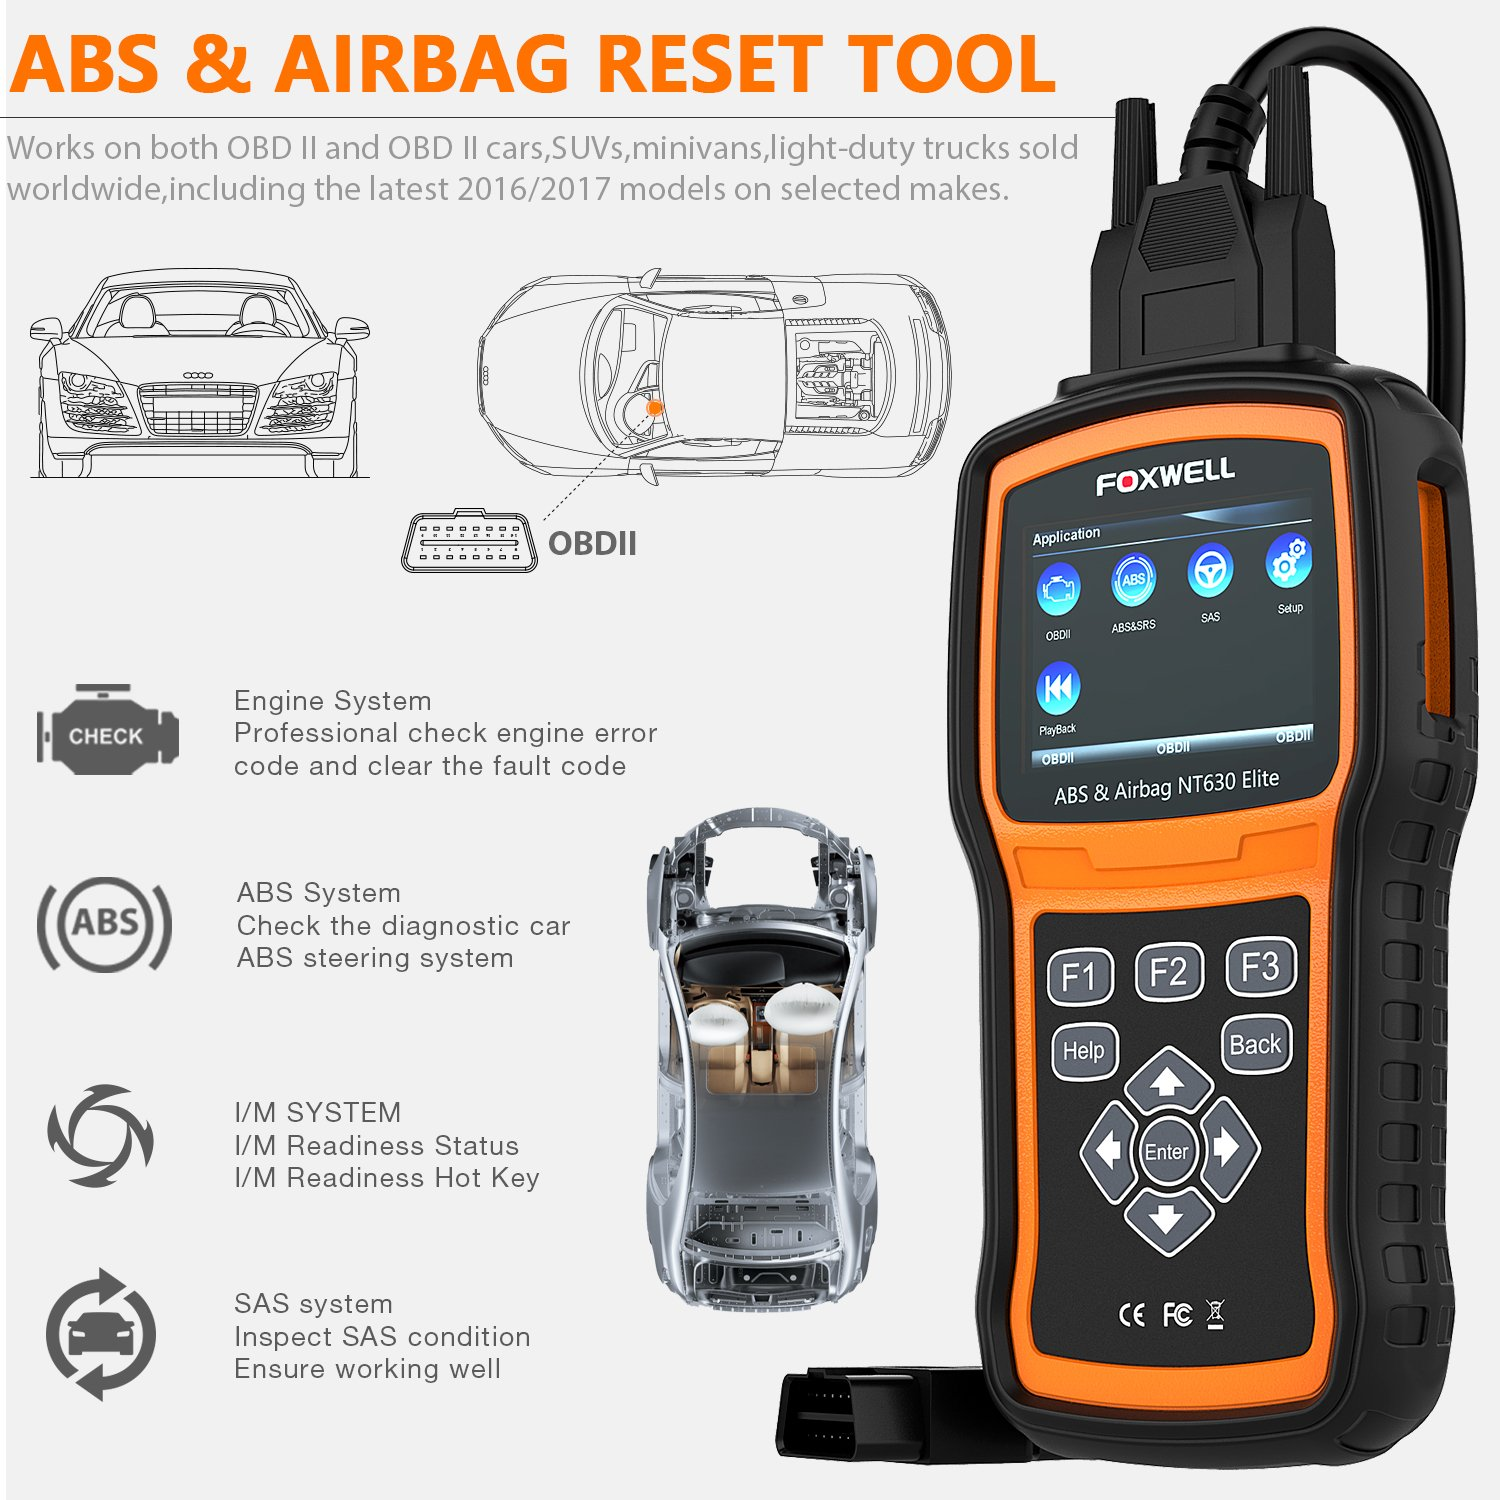 FOXWELL NT630 Elite OBD2 Scanner ABS SRS Code Reader Automotive OBD II ABS Airbag Diagnostic and Active Test Scan Tool by FOXWELL (Image #2)